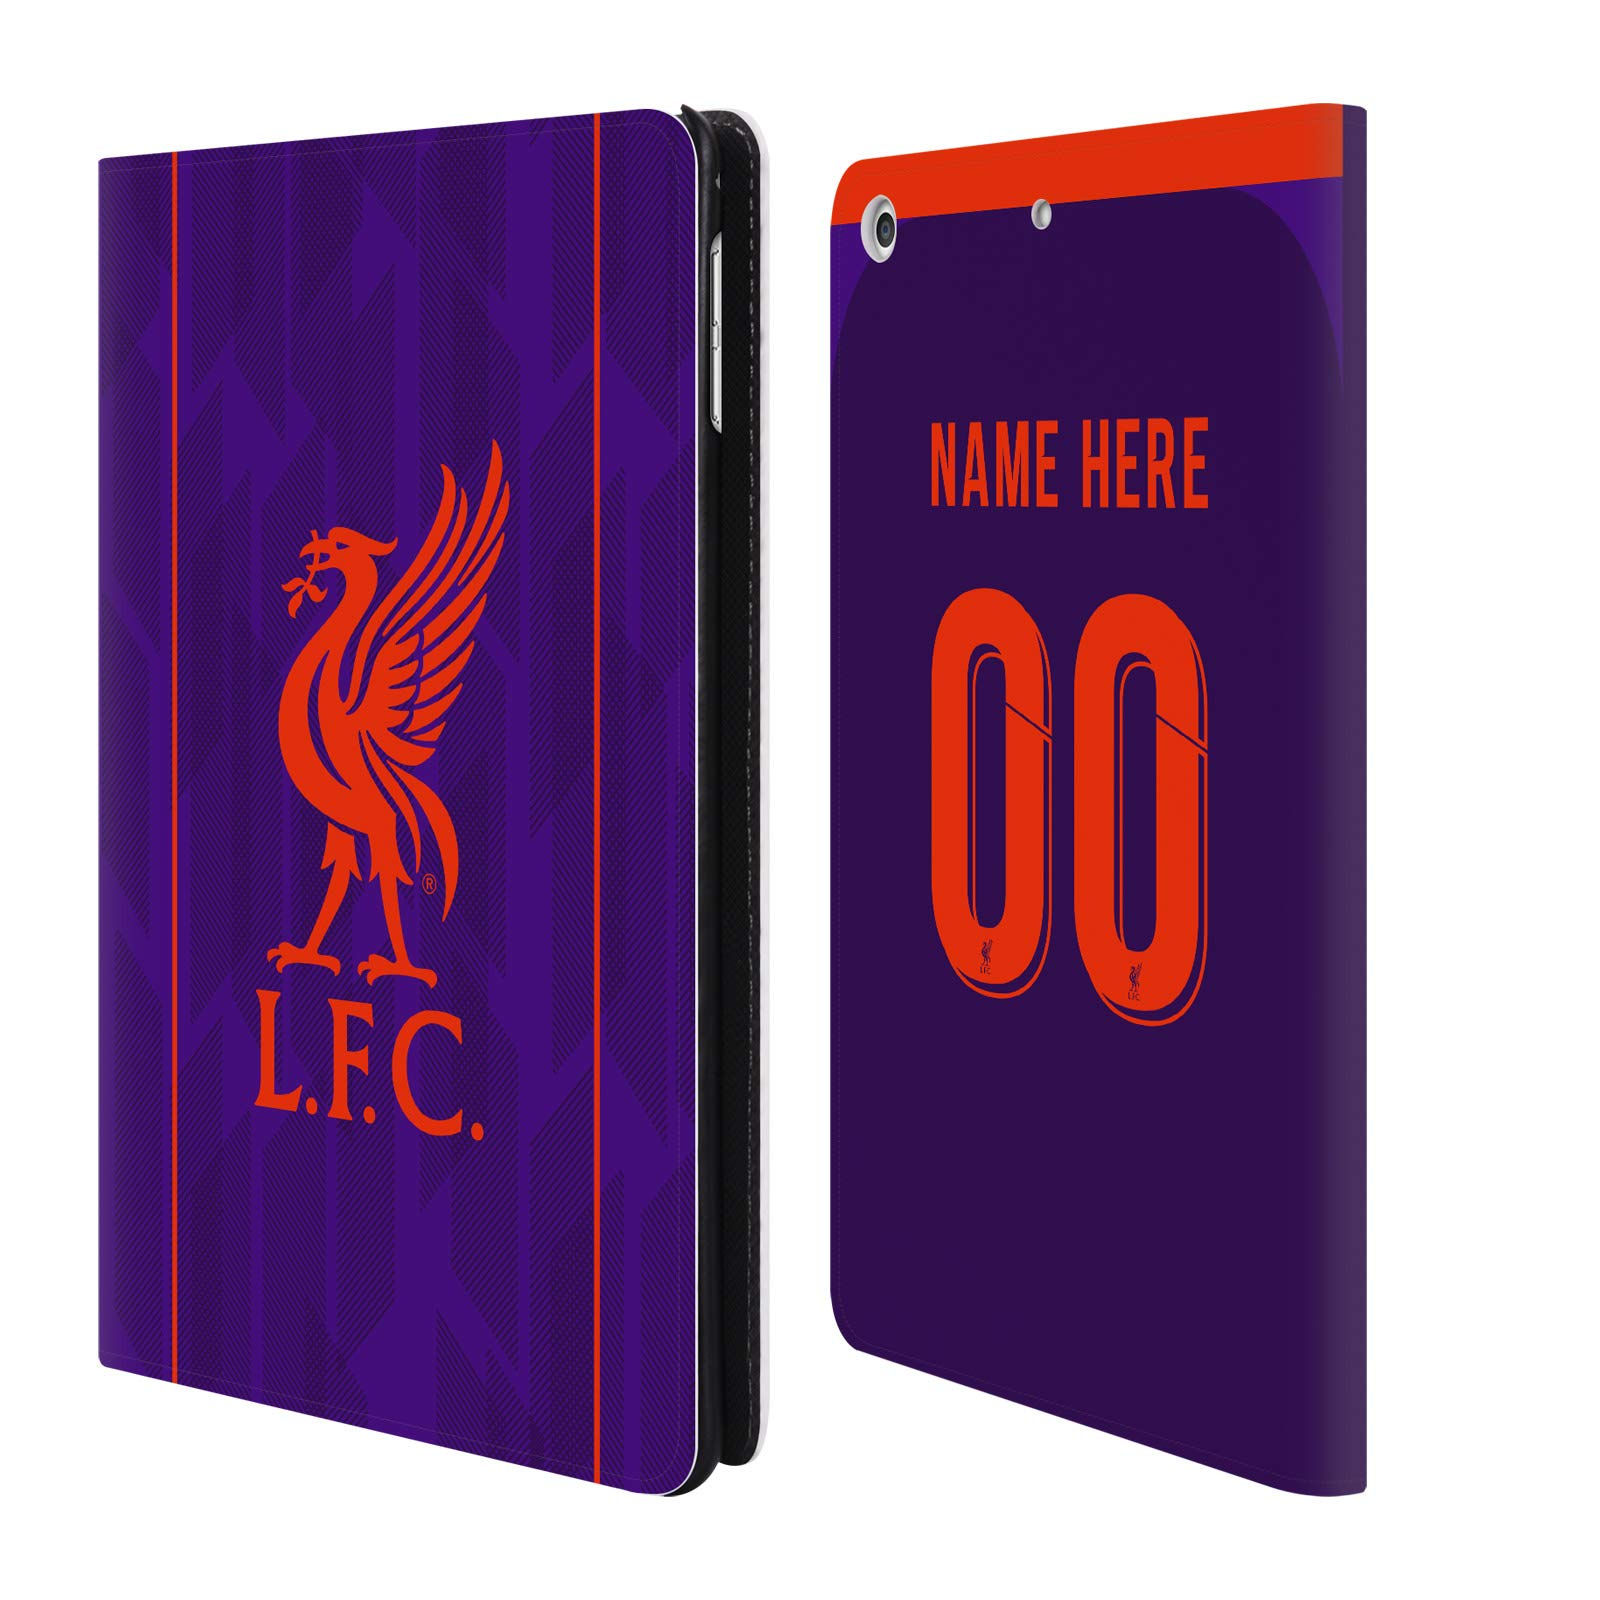 Custom Customized Personalized Liverpool Football Club Away Kit 2018/19 PU Leather Book Wallet Case Cover for iPad Mini 4